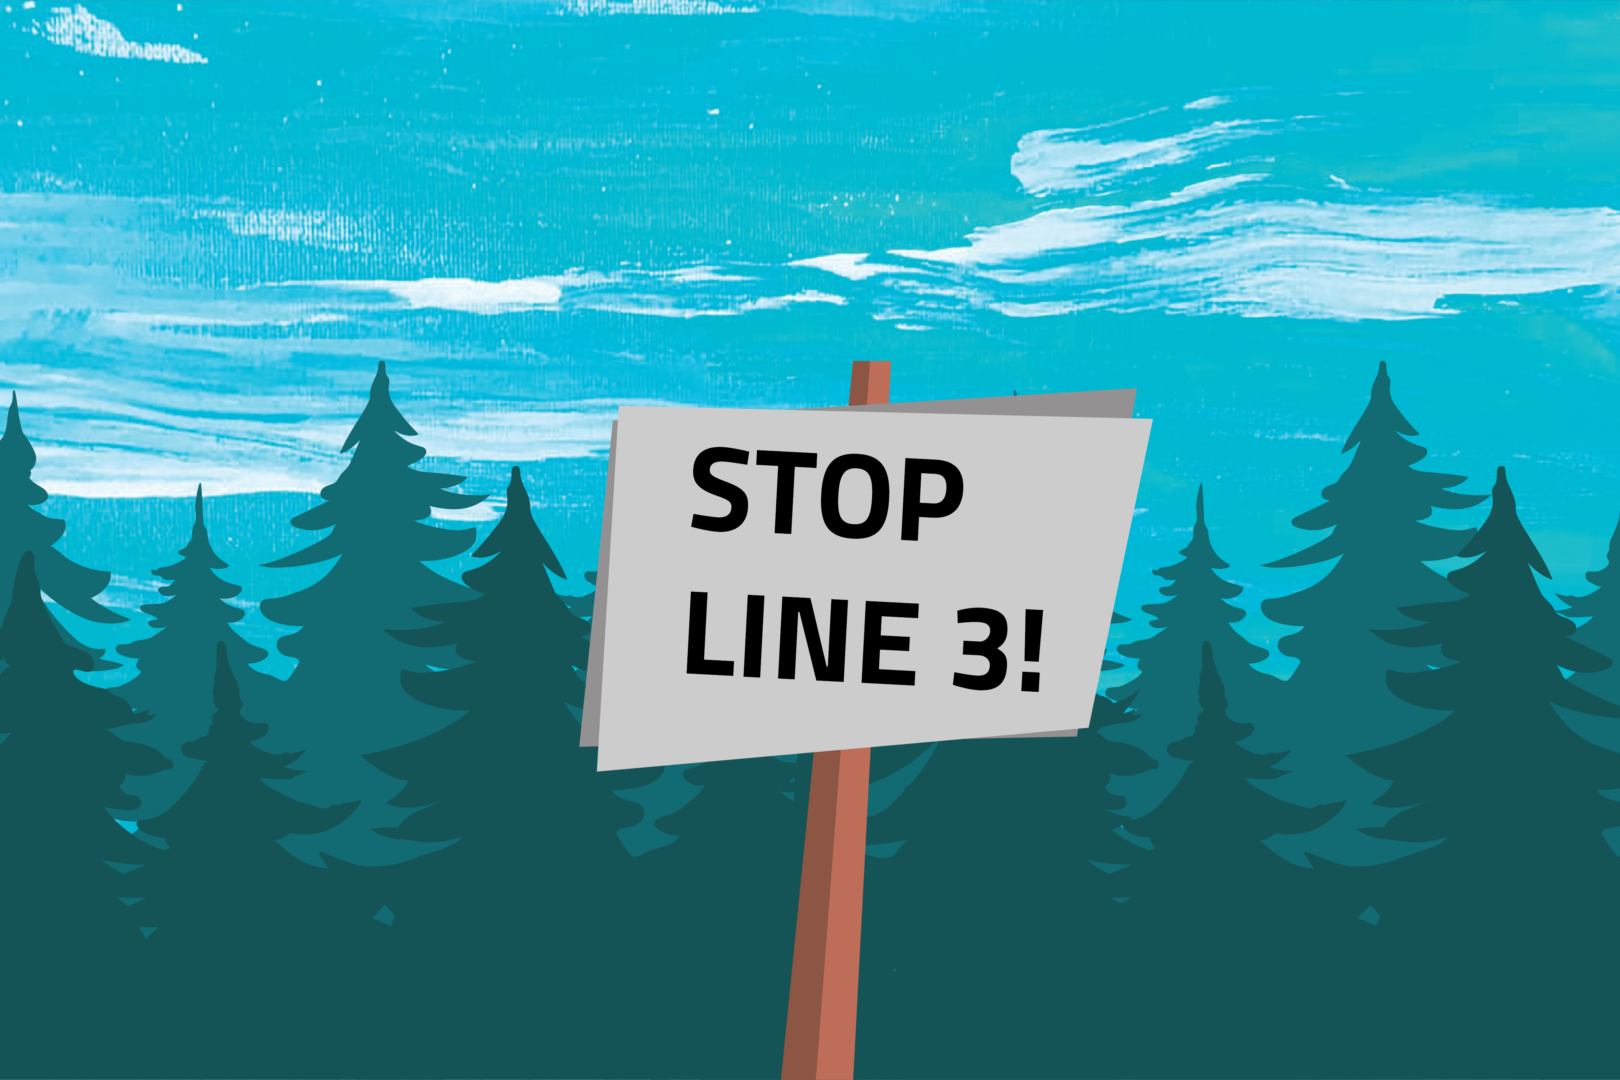 The Line 3 pipeline expansion must be stopped